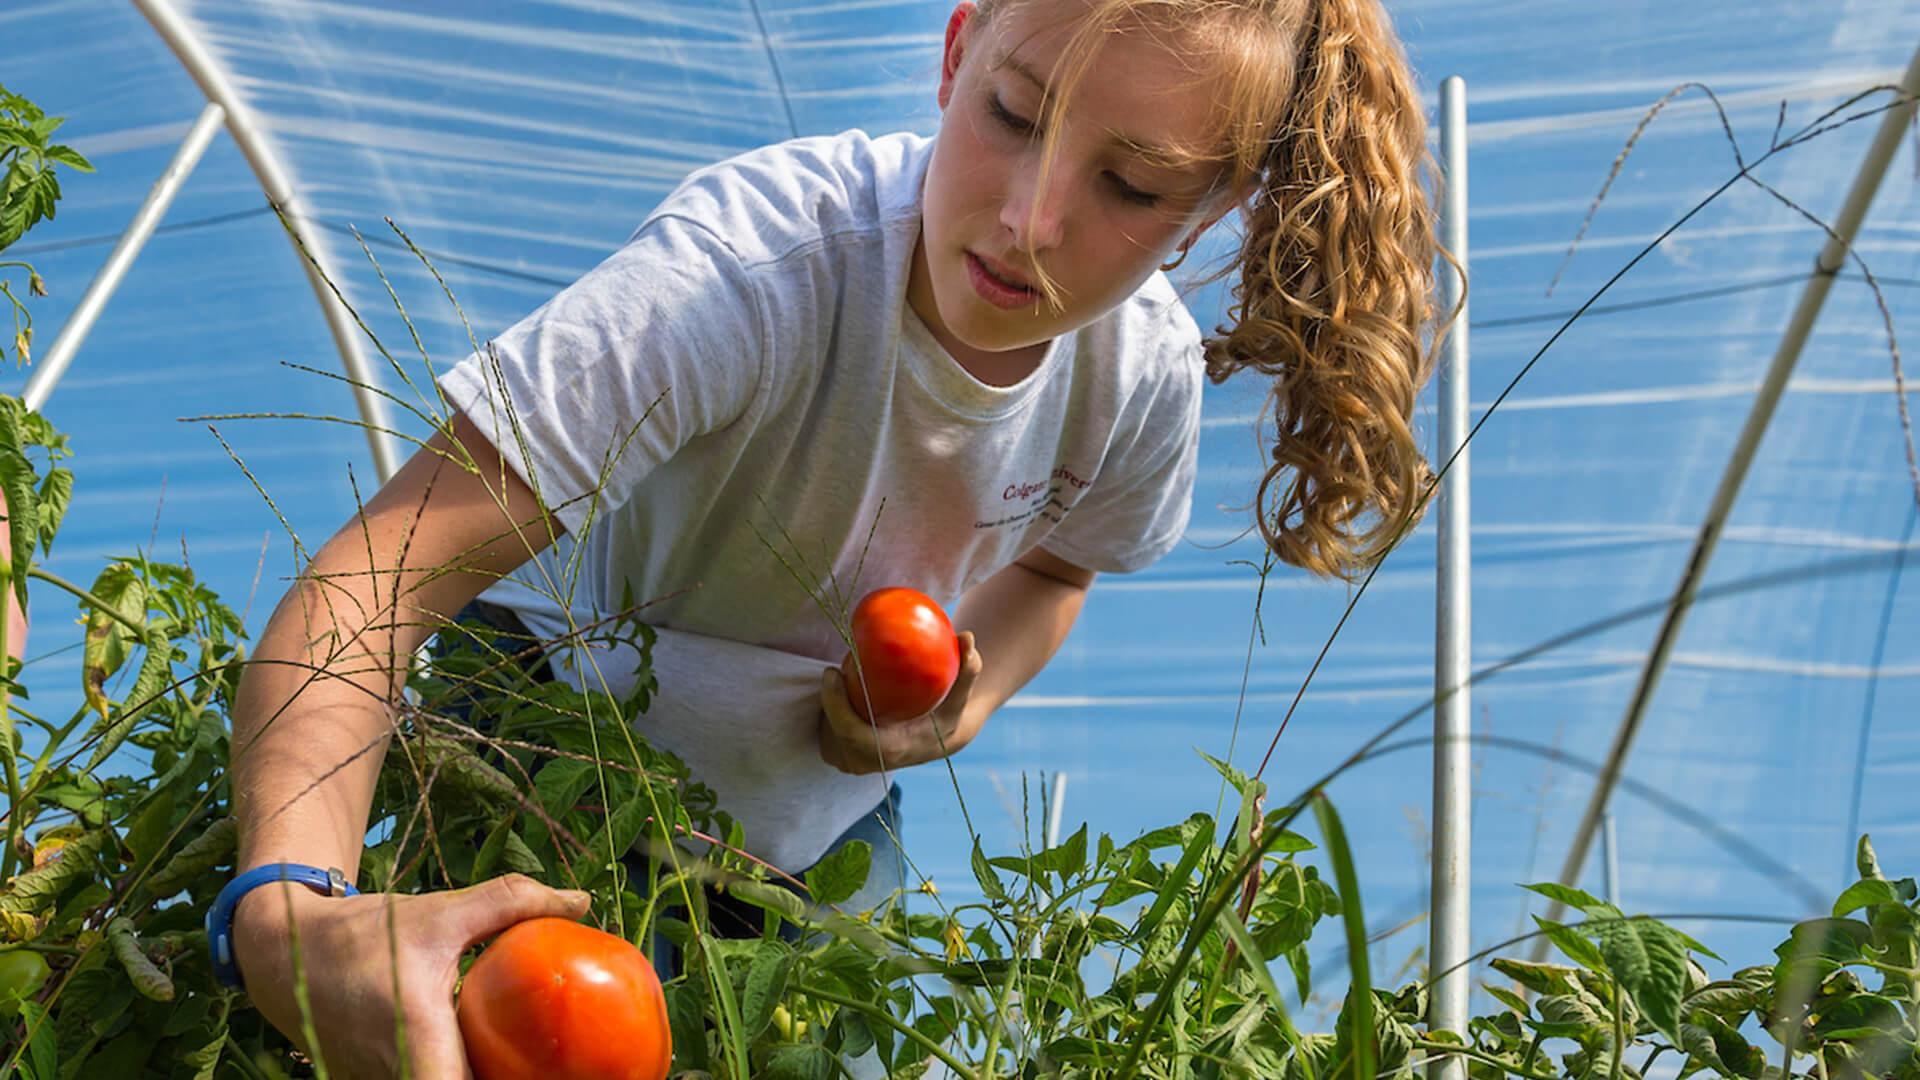 A student assists with picking tomatoes at Common Thread as part of the COVE's Afternoon of Community Service.